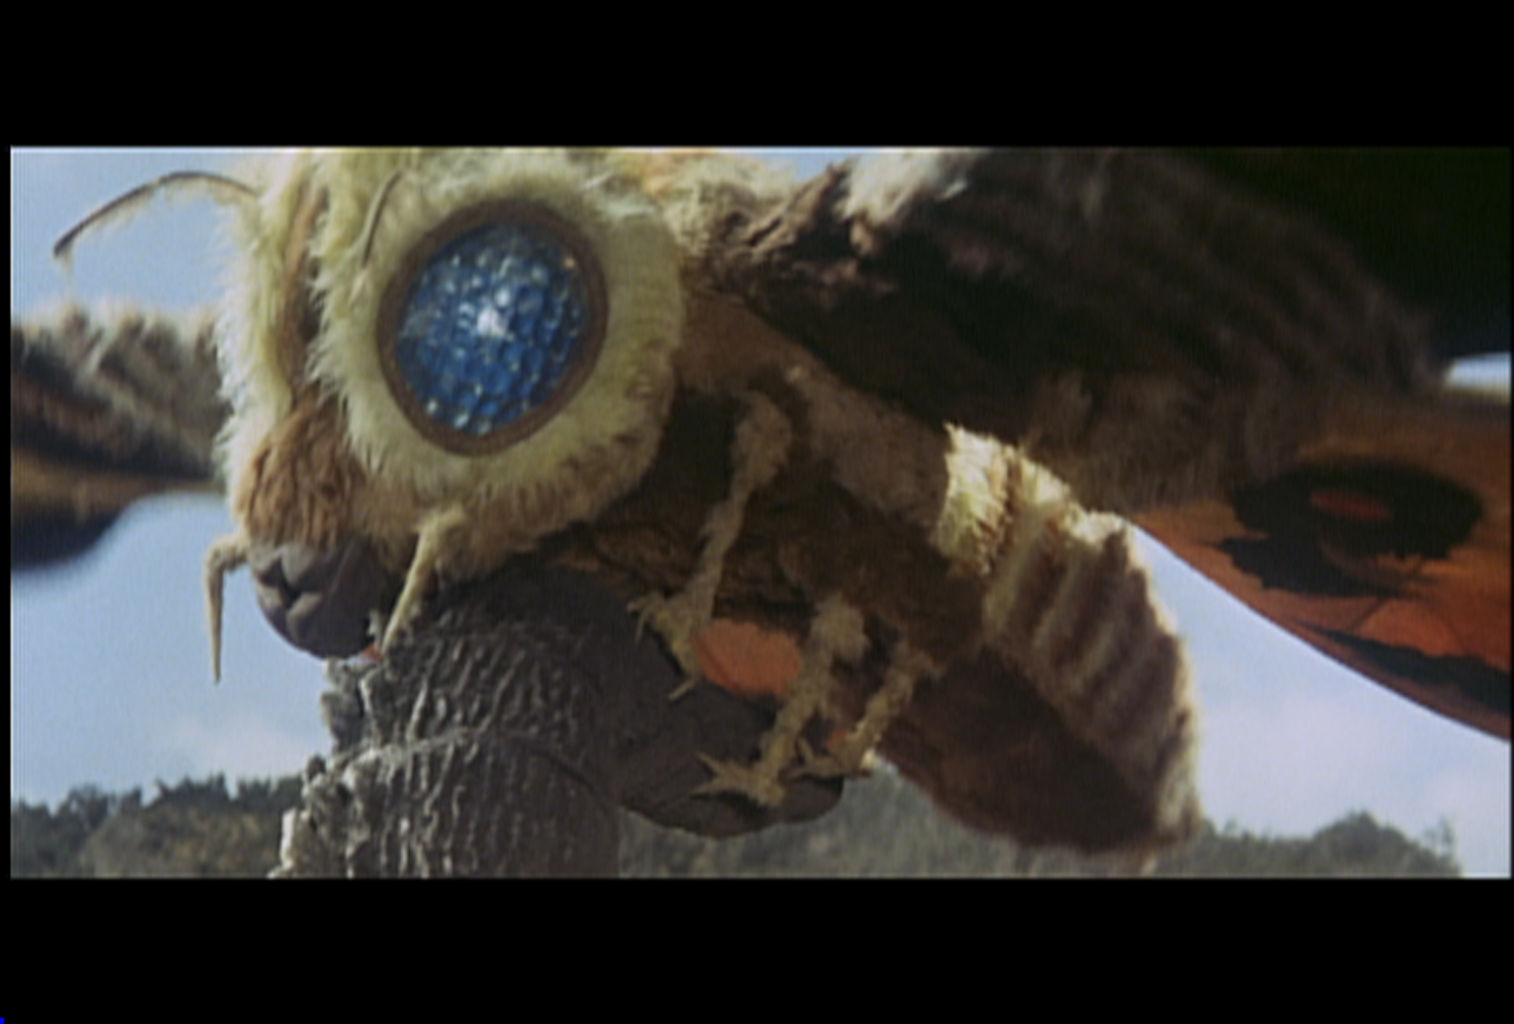 Mothra grabs Godzilla's tail.